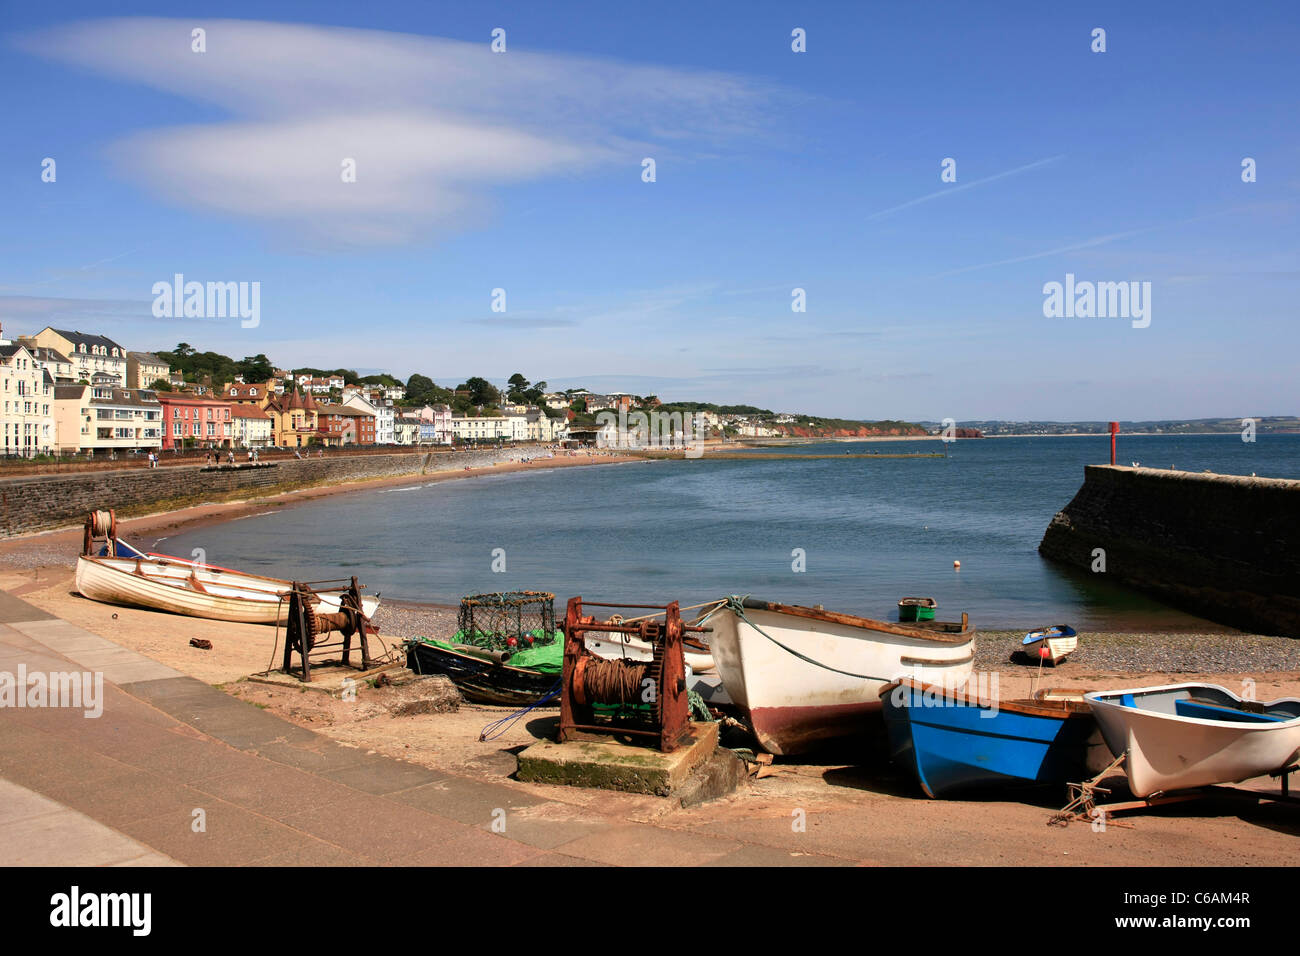 The old harbour and boat landing area at Dawlish in Devon - Stock Image